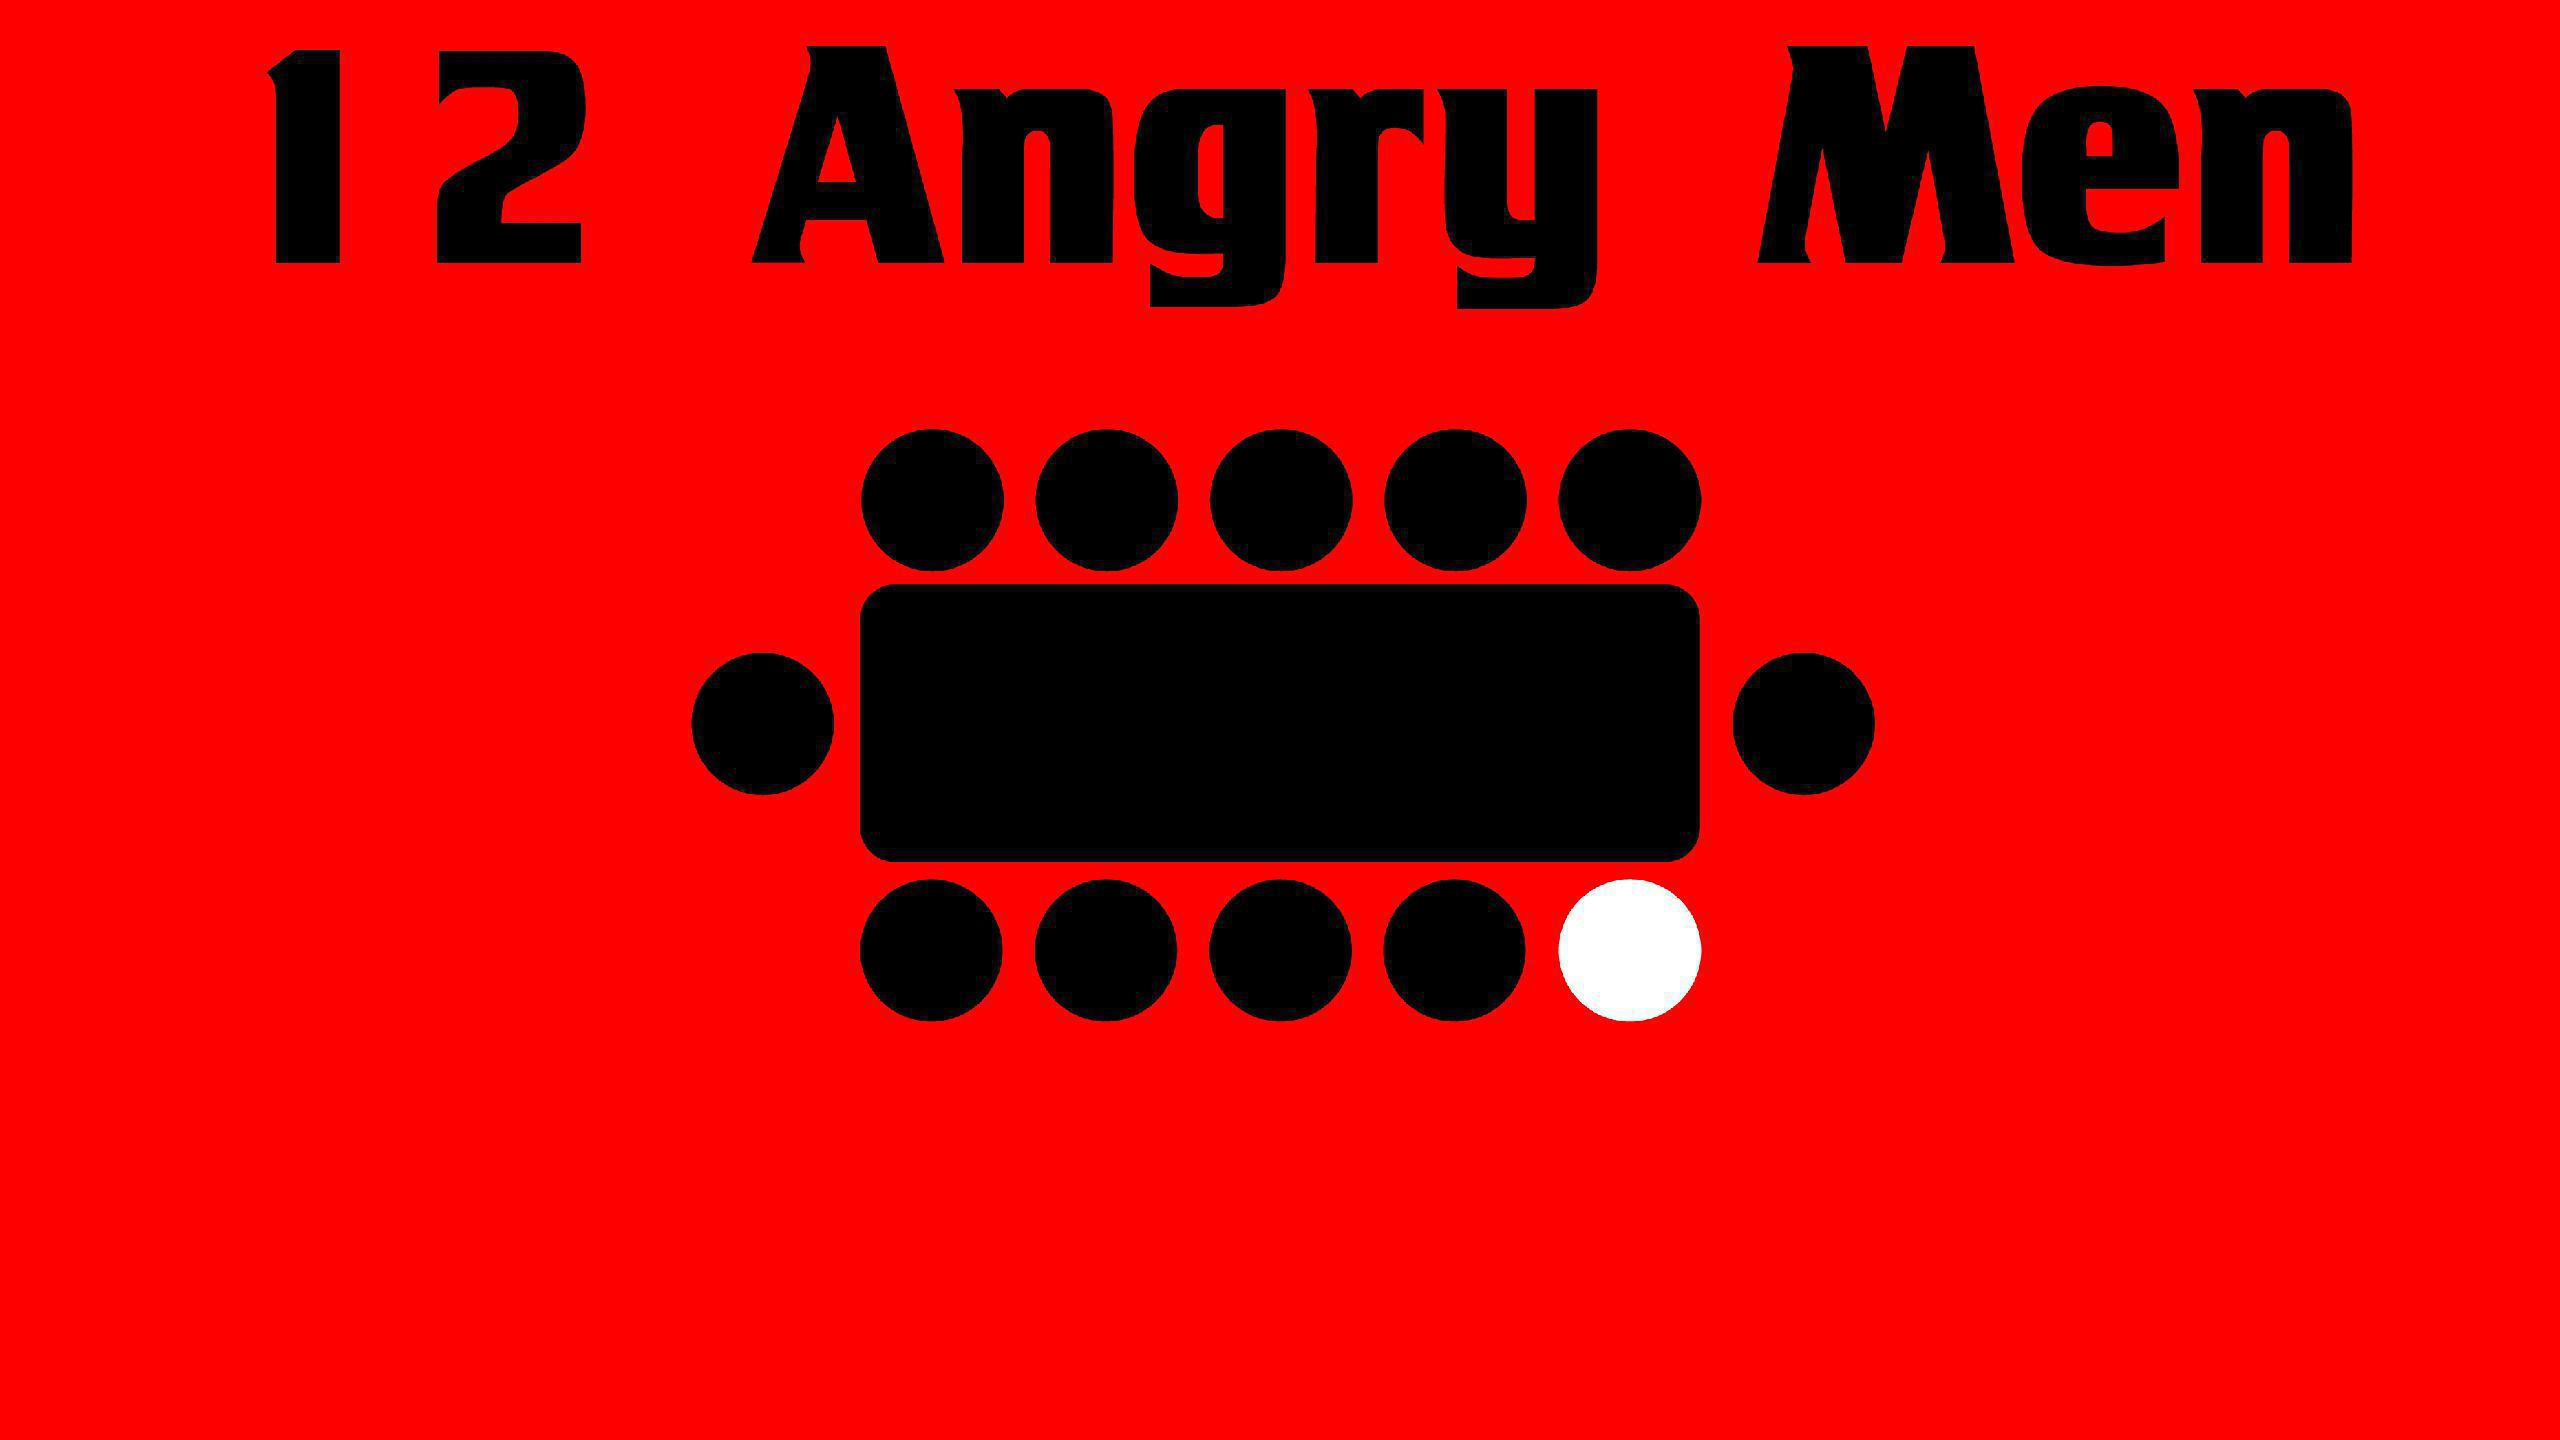 12 Angry Men Wallpapers Images Photos Pictures Backgrounds 2560x1440